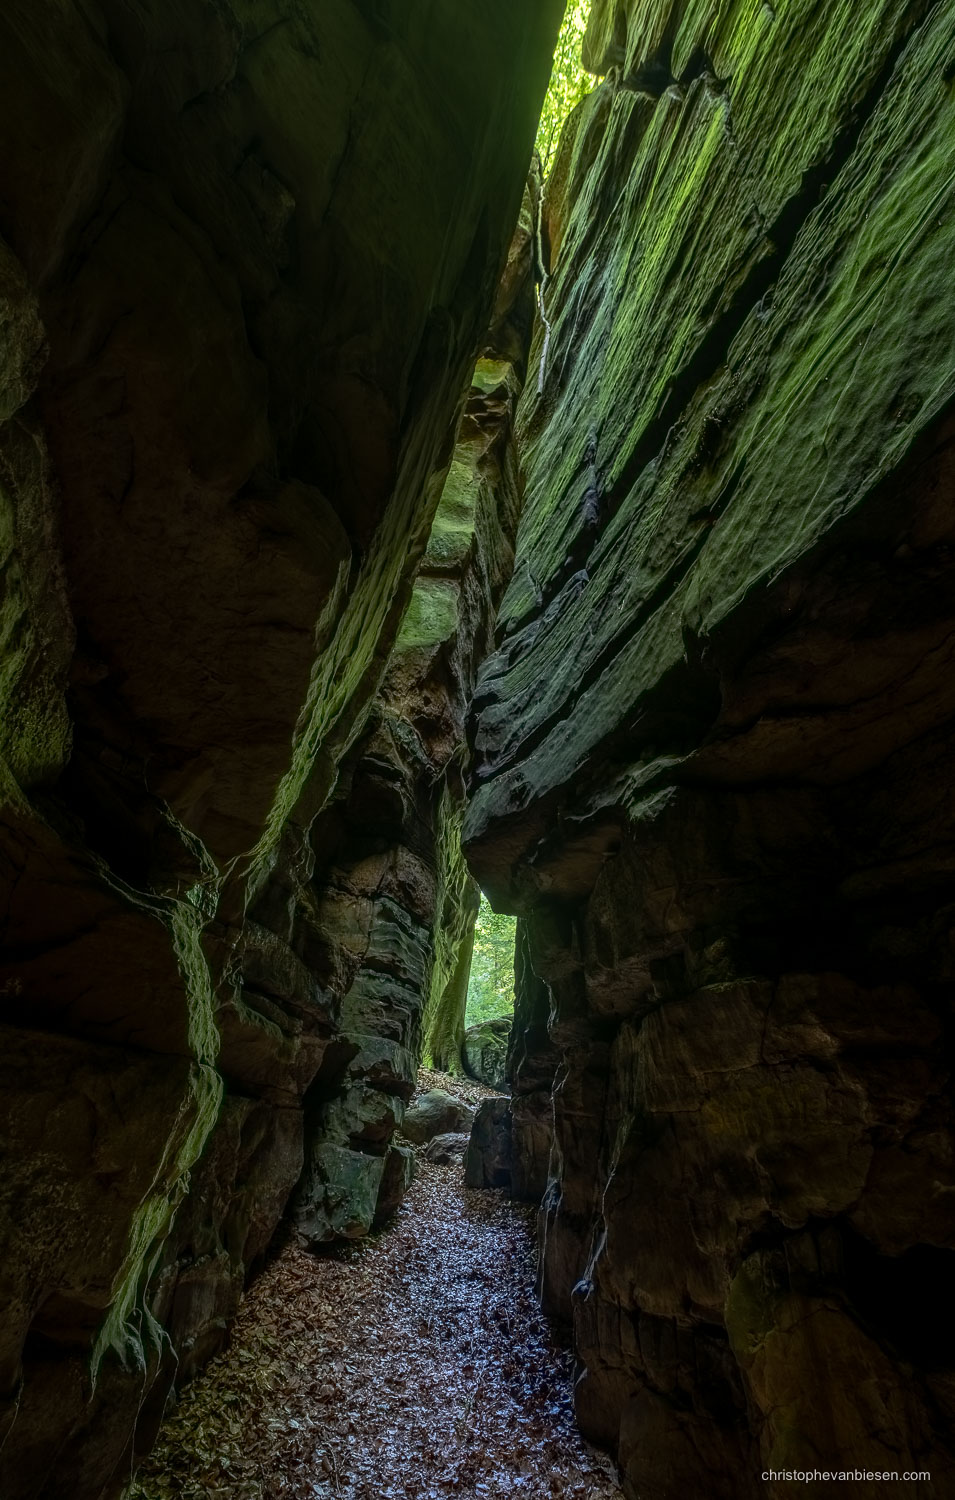 Visit the Mullerthal - Luxembourg - Narrow passage in the Mullerthal's Goldfralay caves in eastern Luxembourg - Green Canyon